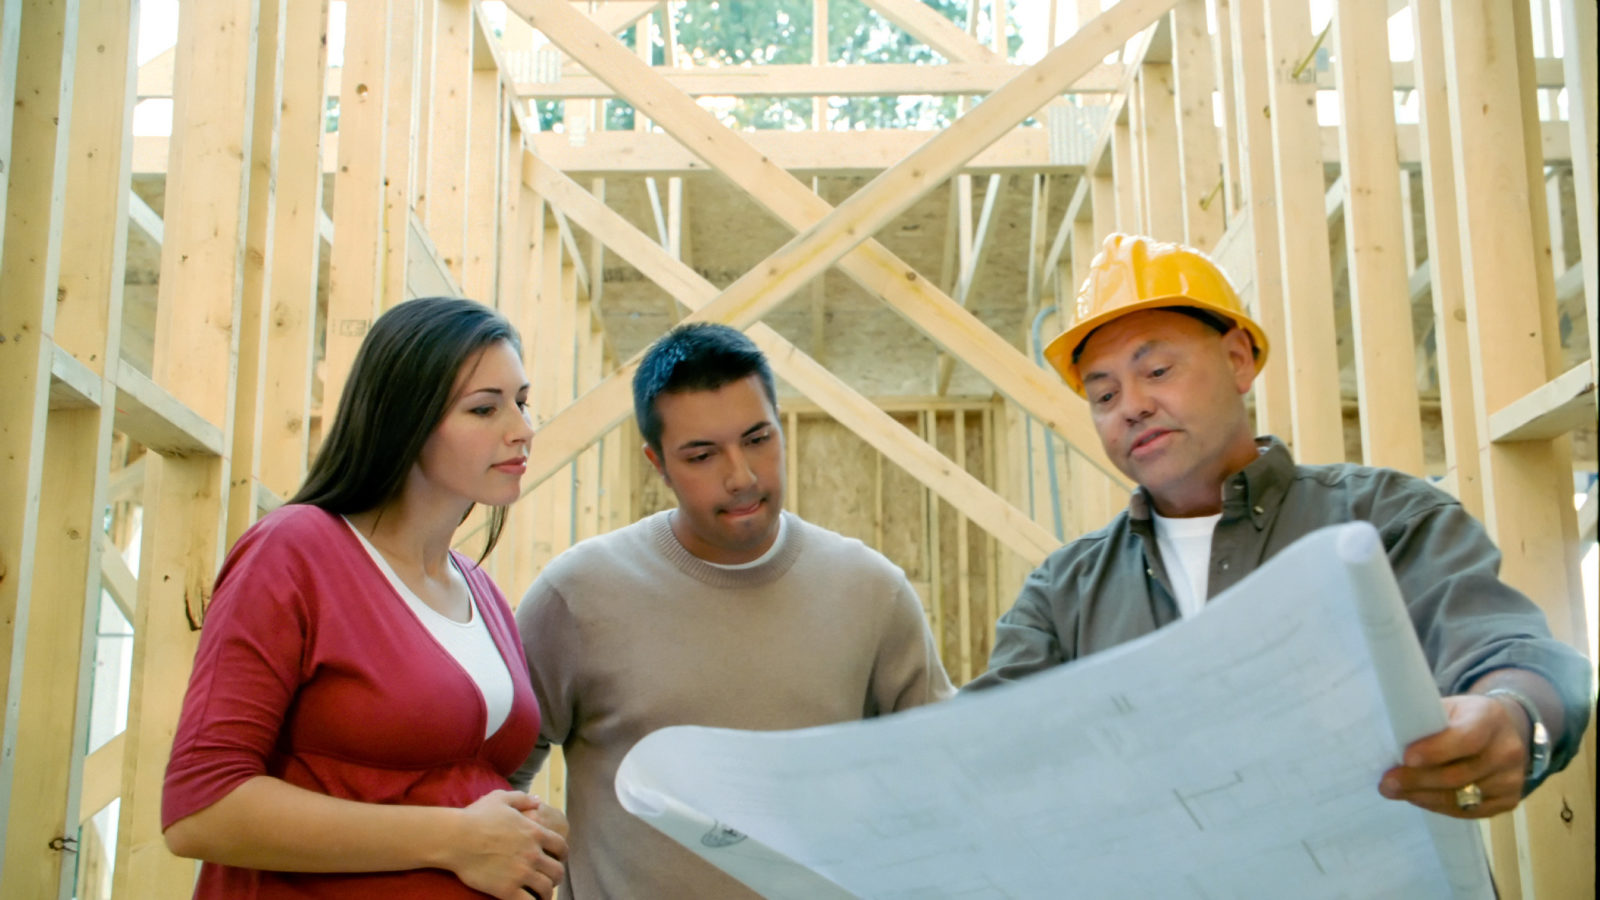 Buying new construction - Long Beach and Lakewood Realtor